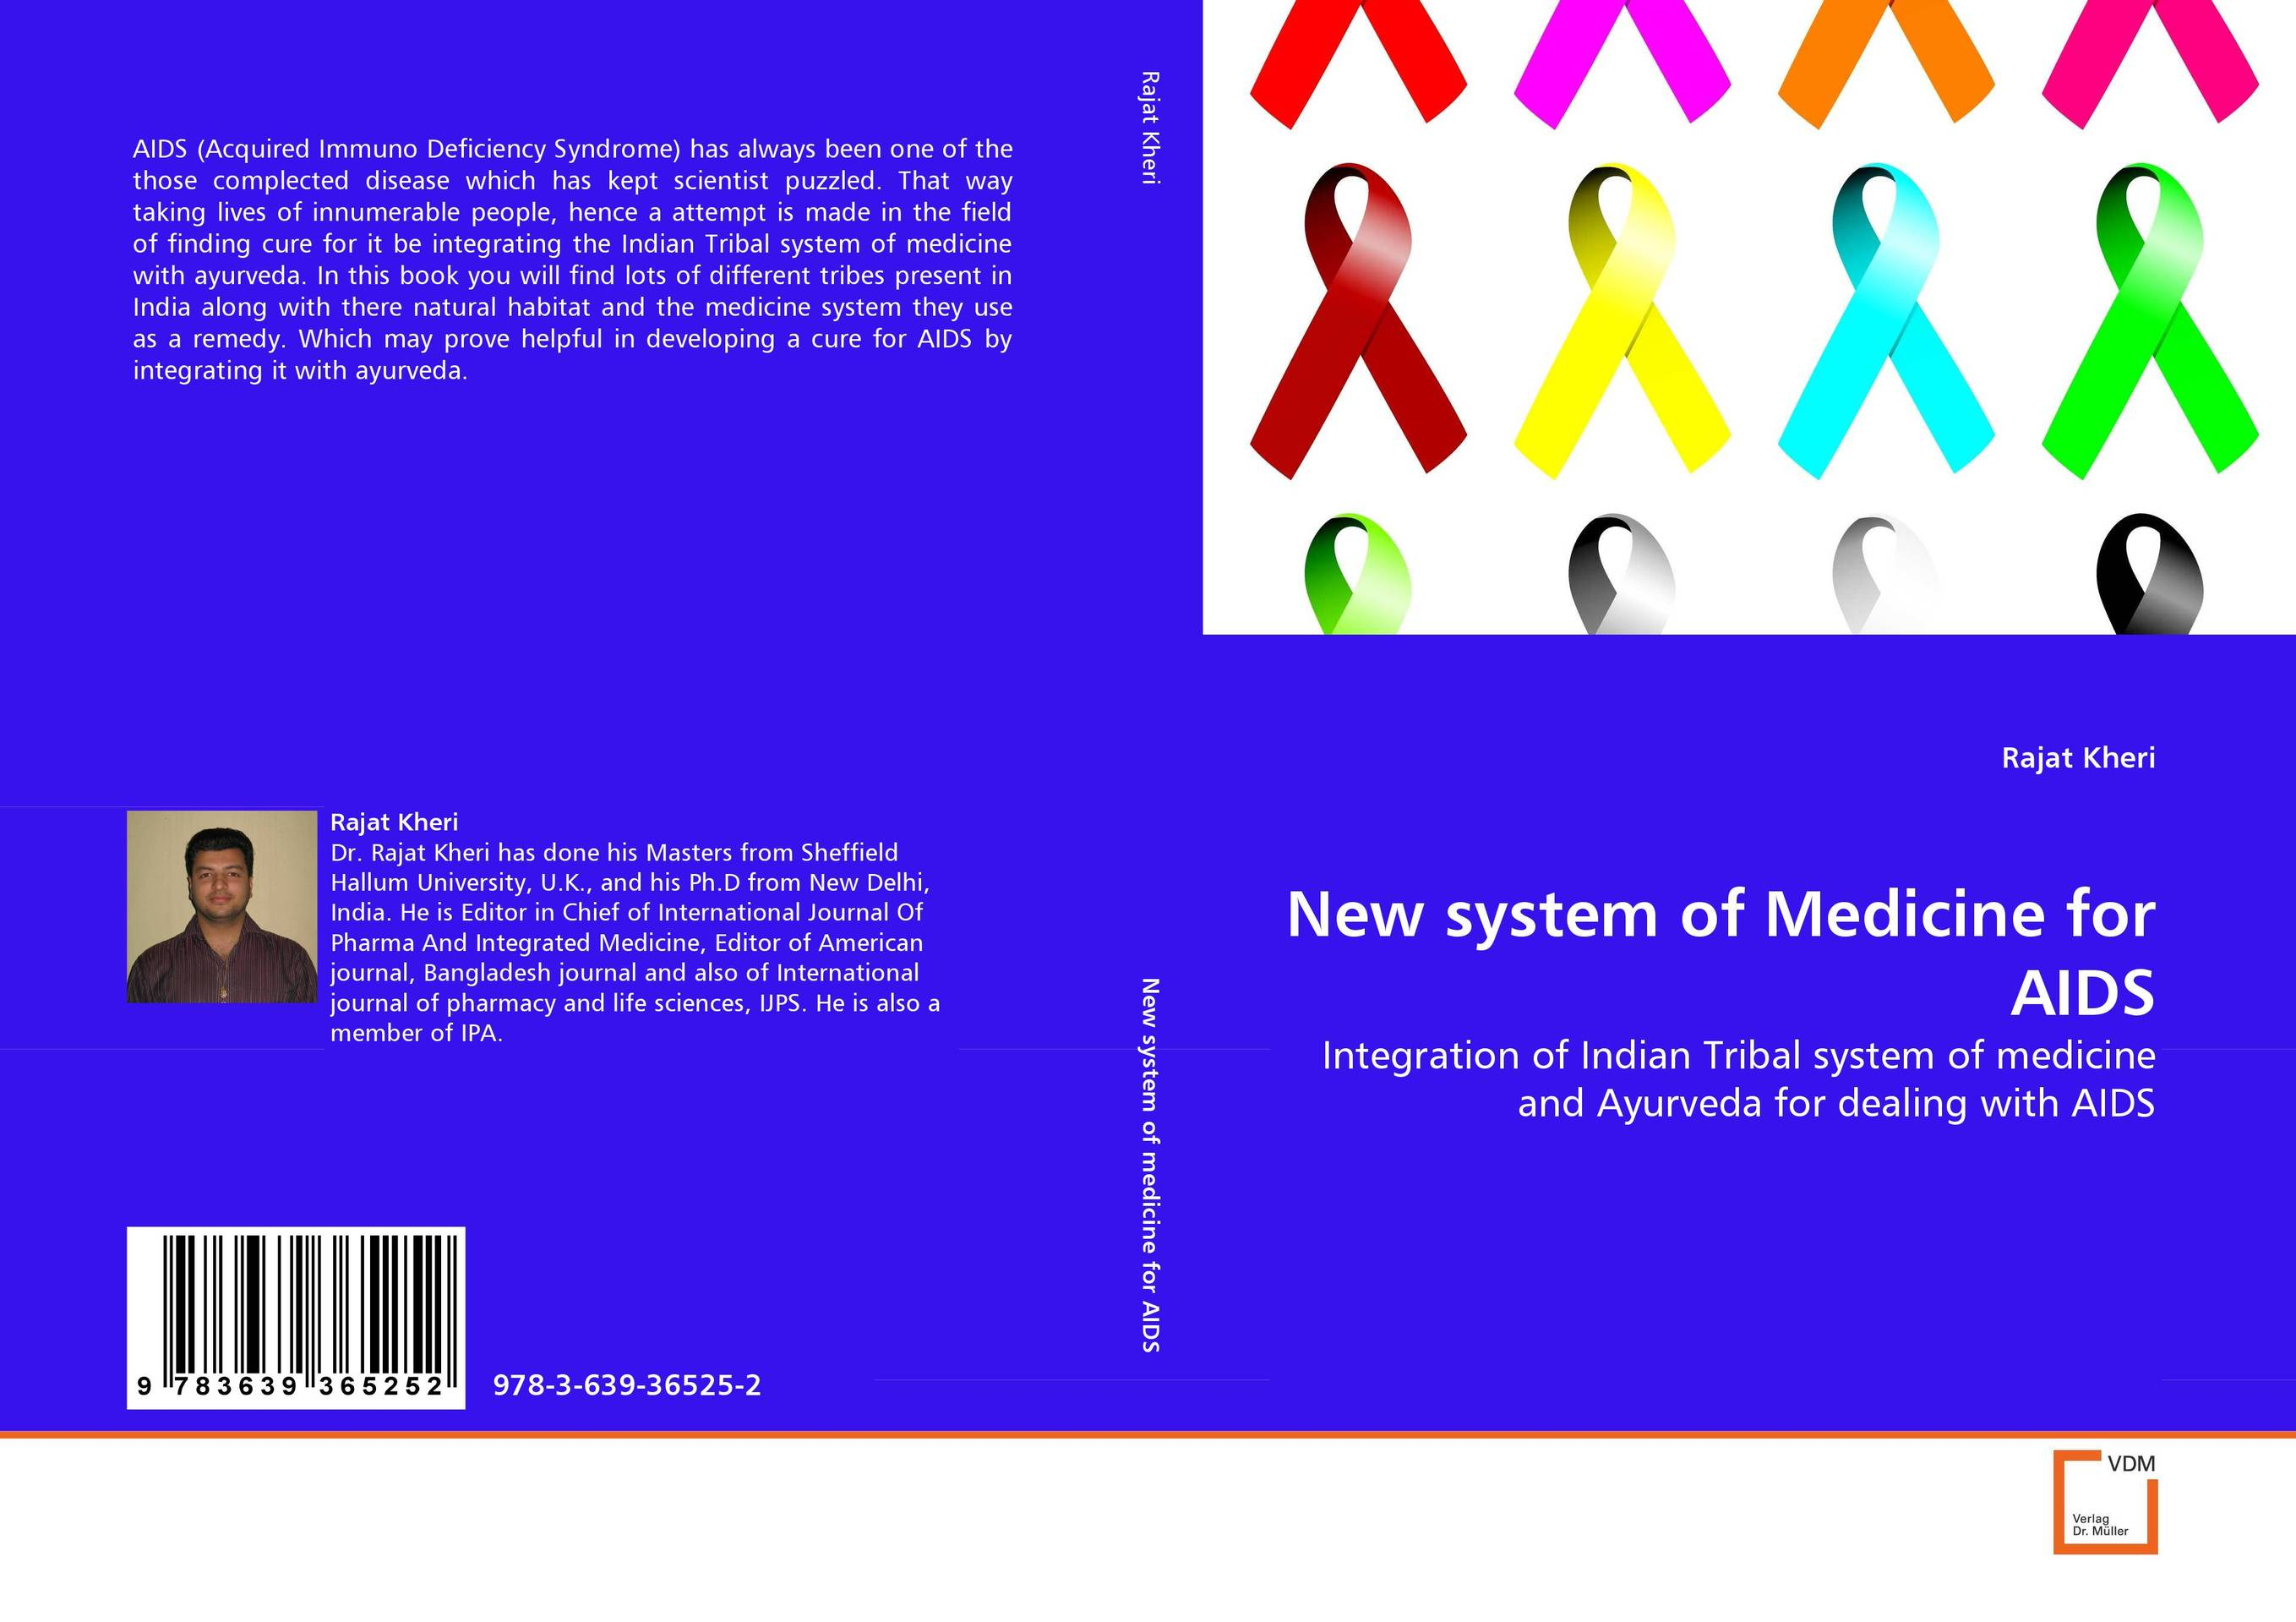 New system of Medicine for AIDS